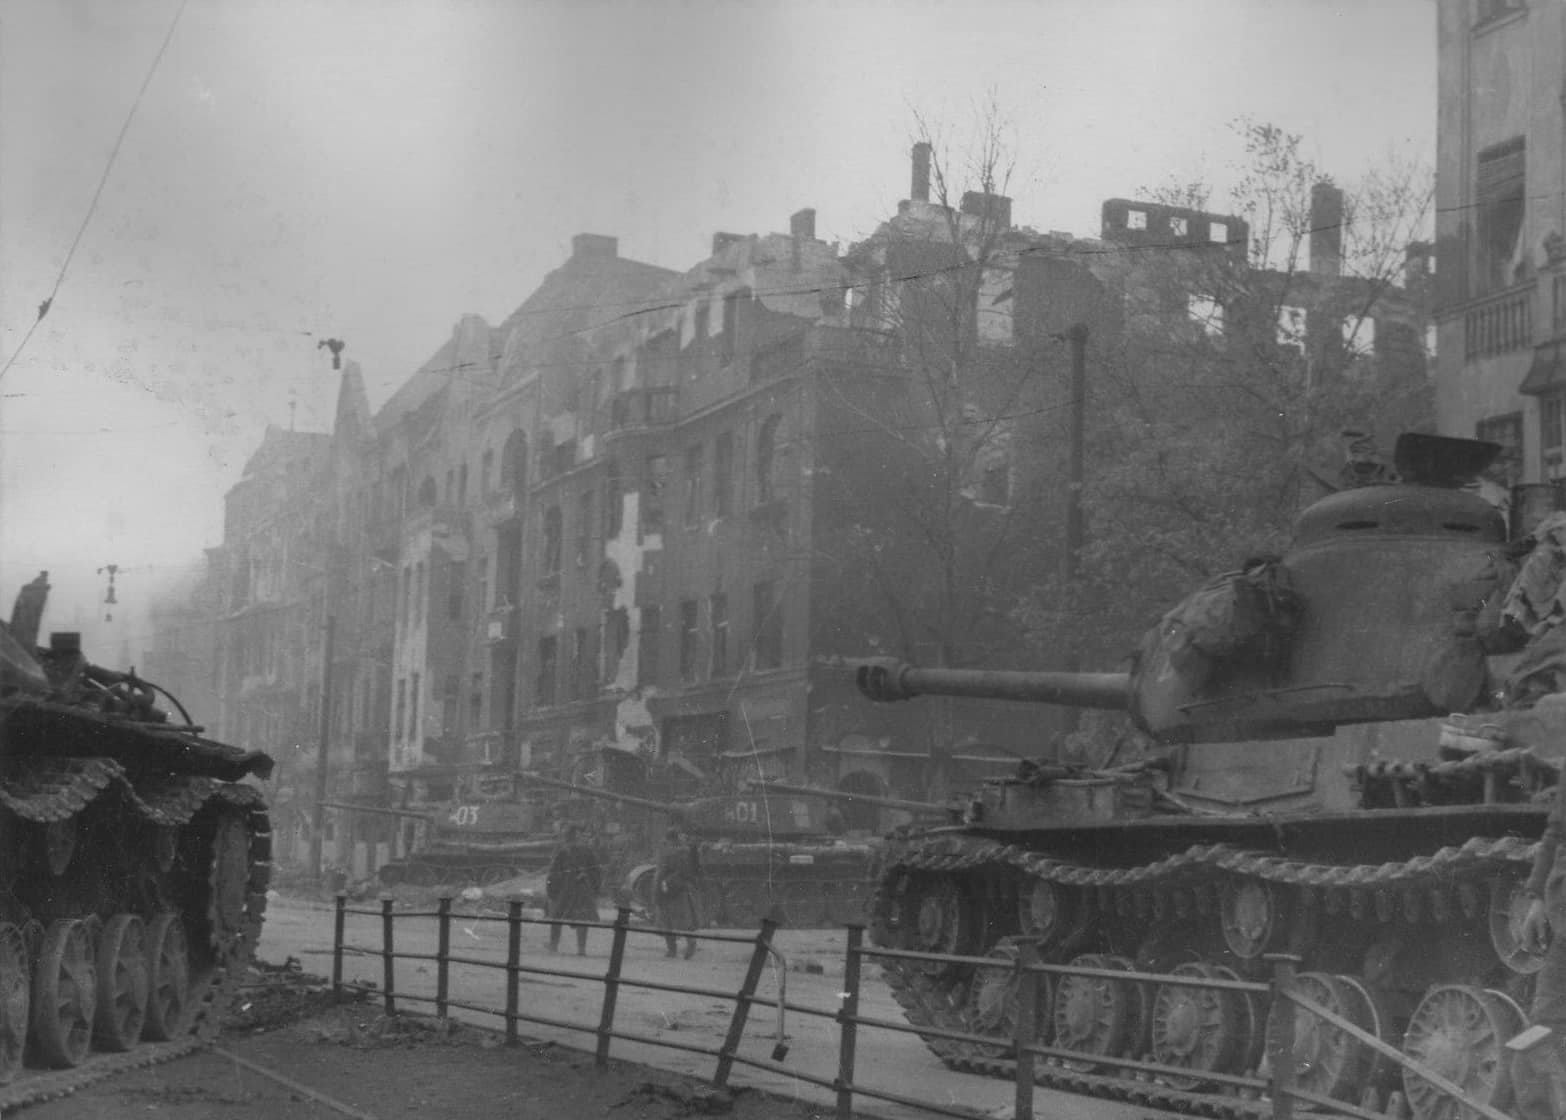 Column of the division of the Soviet heavy tanks IS-2 on the streets of Berlin